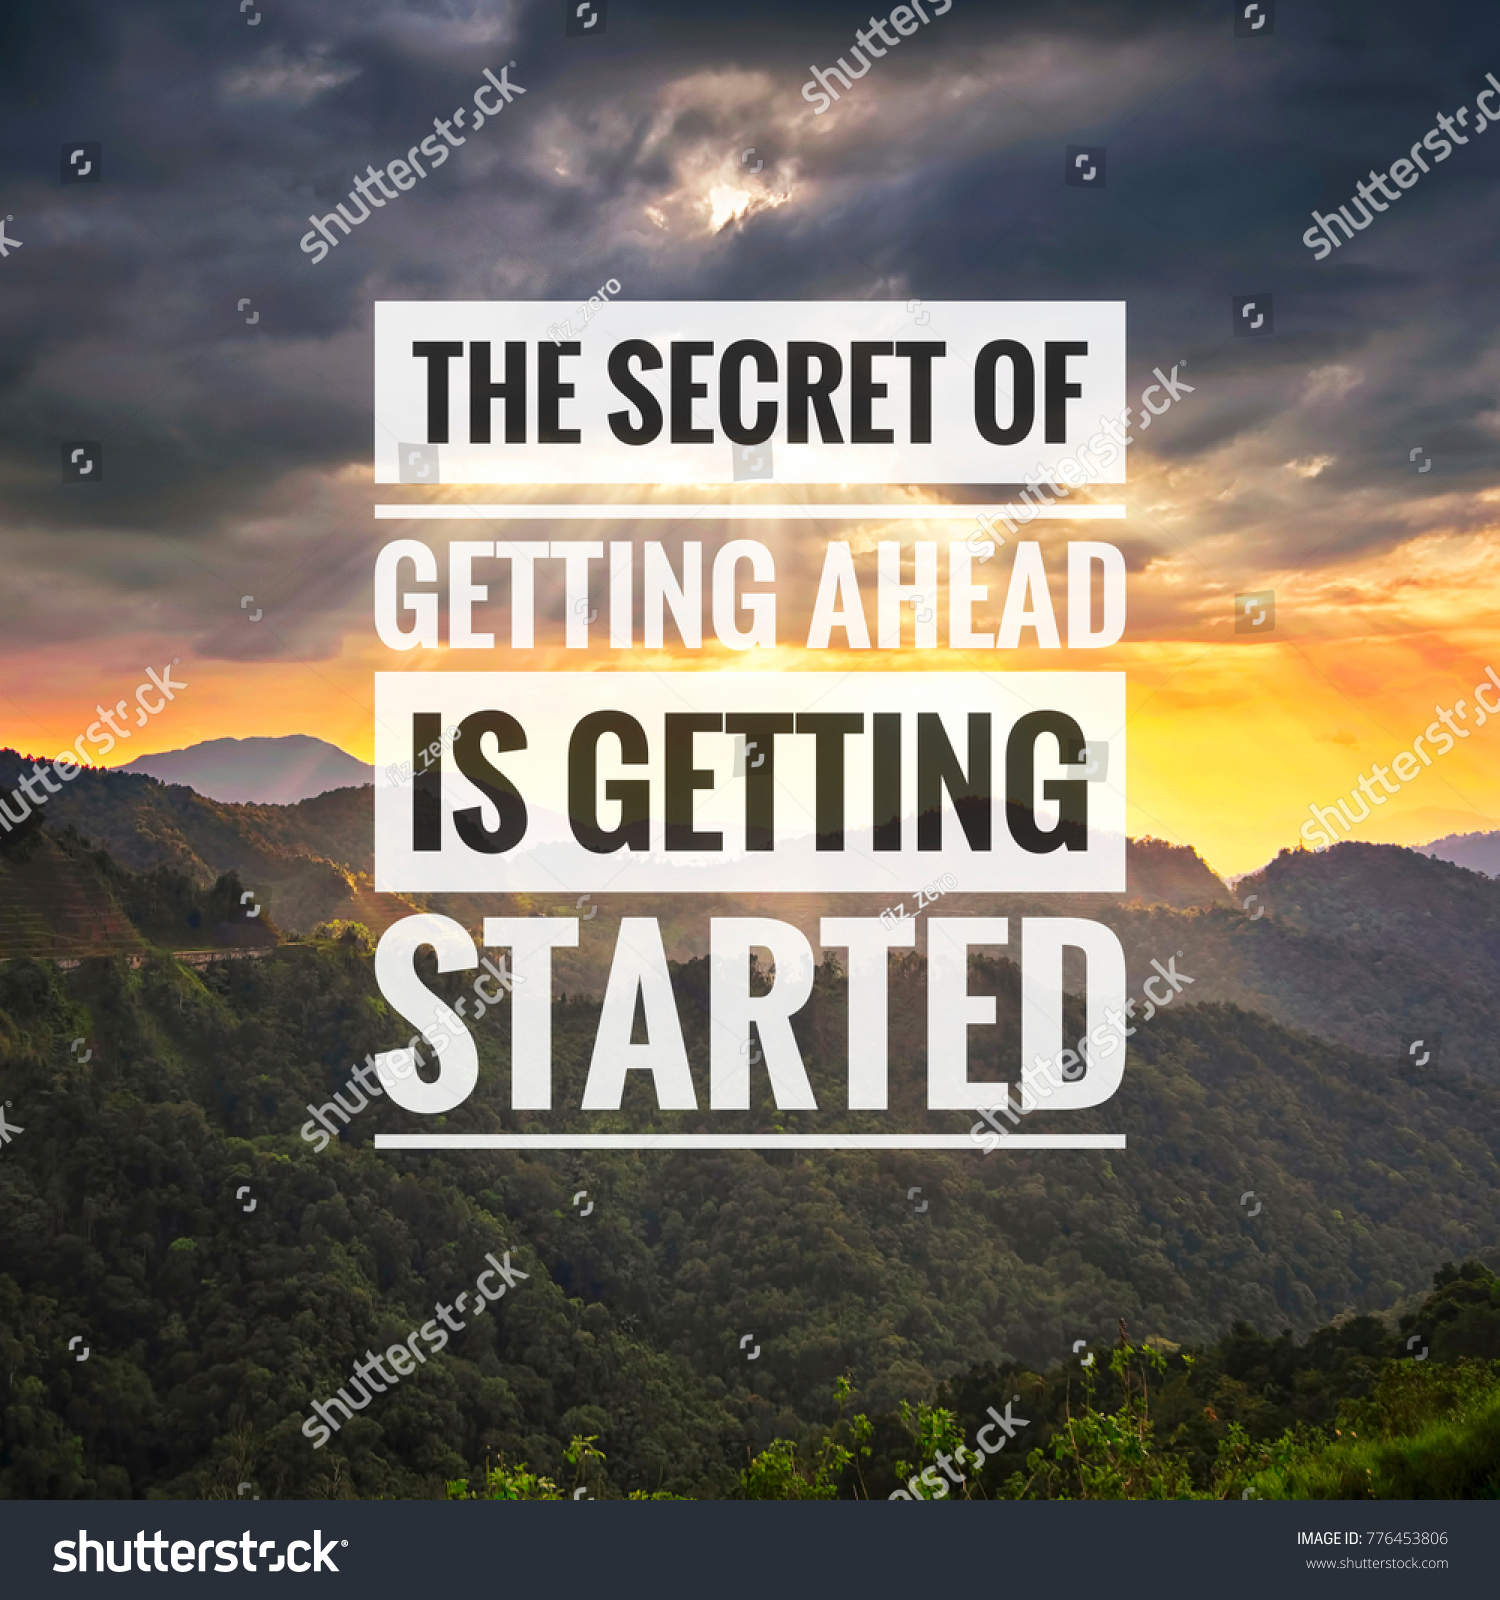 The Secret Quotes Inspirational Success Quotes On Mountain Sunset Stock Photo